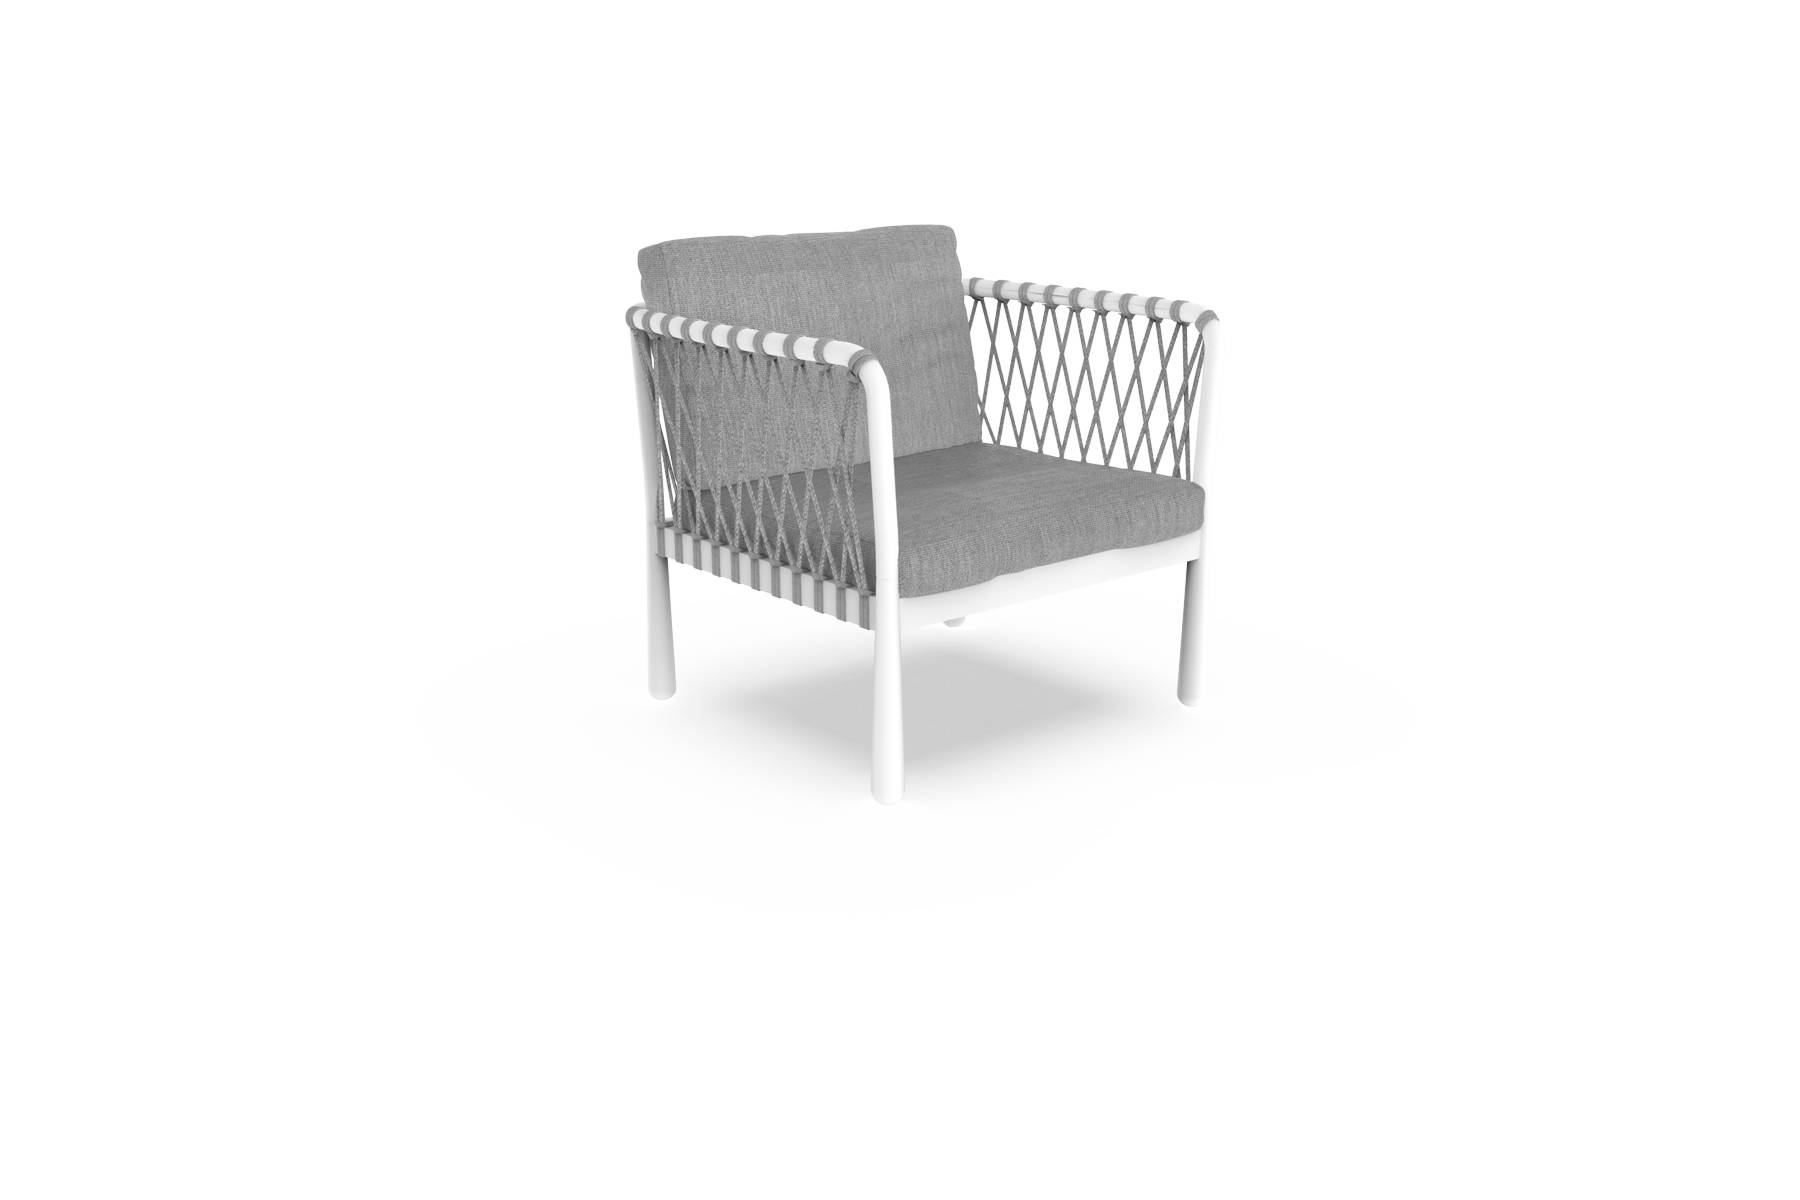 Sofy Living armchair